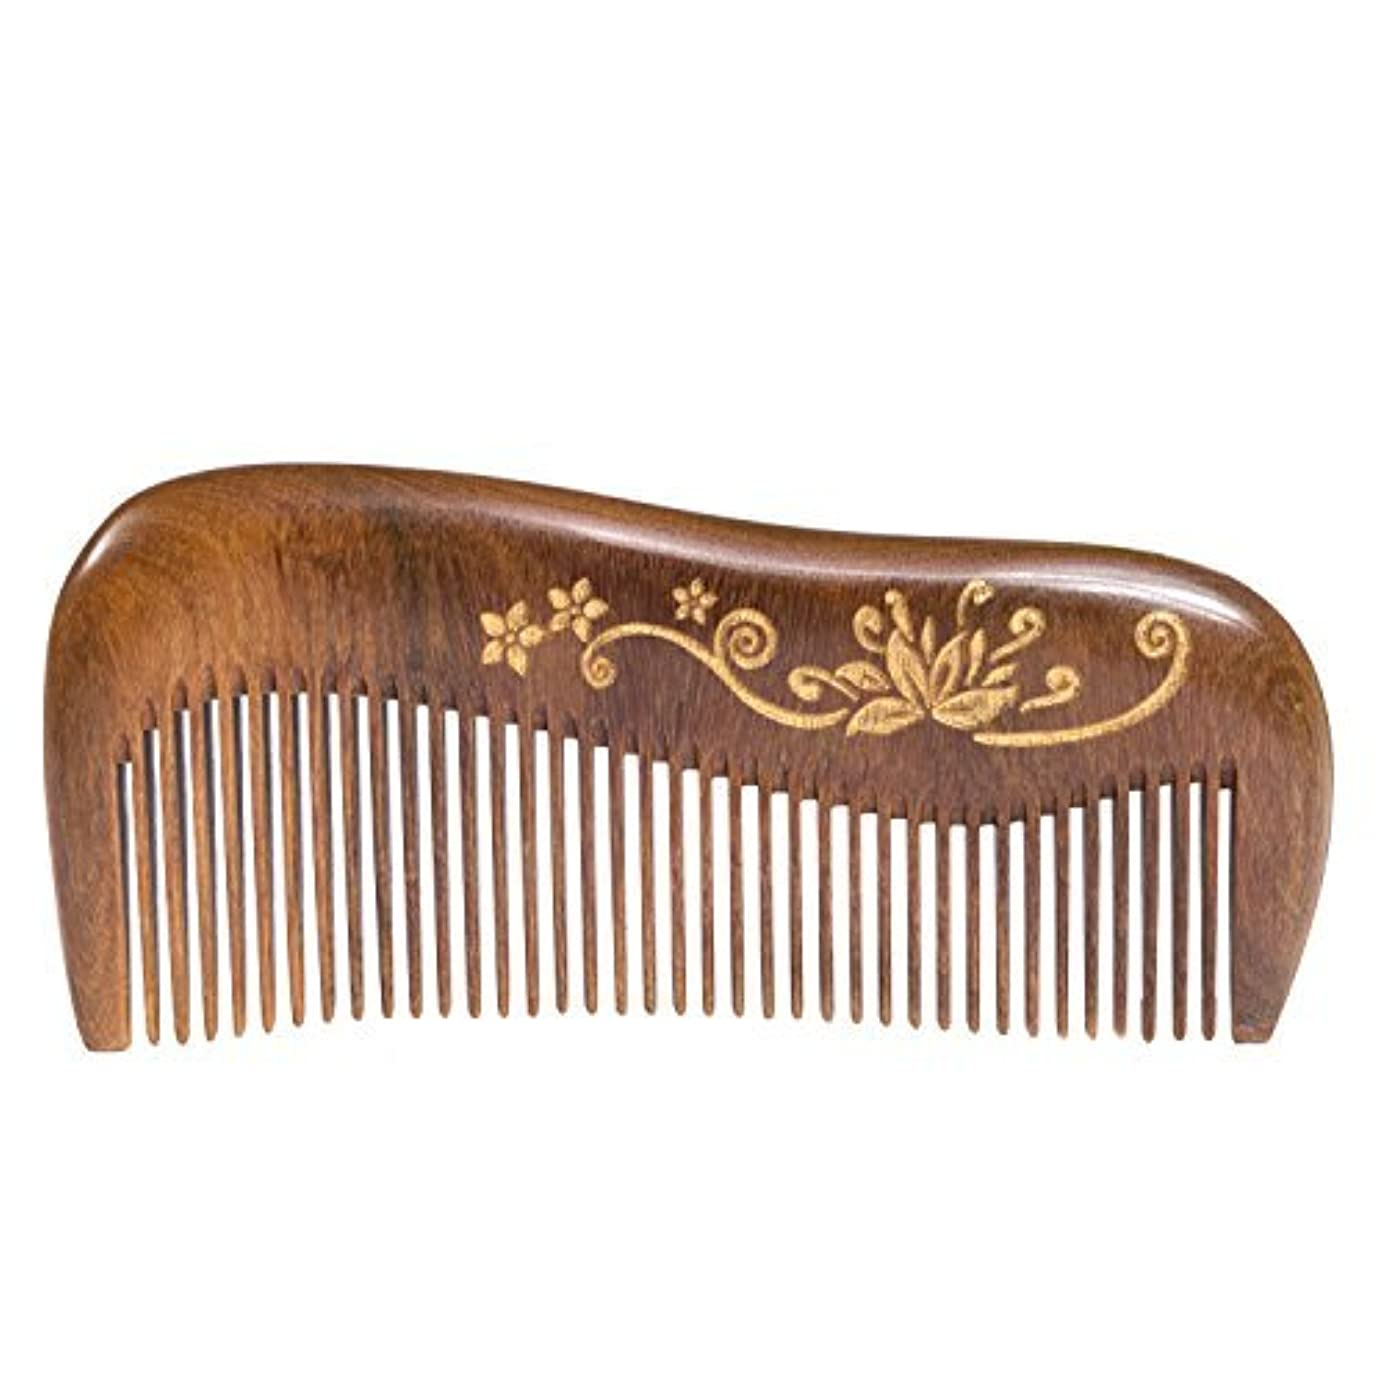 ドル野望頑丈Breezelike Wooden Hair Comb - Fine Tooth Wood Comb for Women - No Static Natural Detangling Sandalwood Comb [並行輸入品]